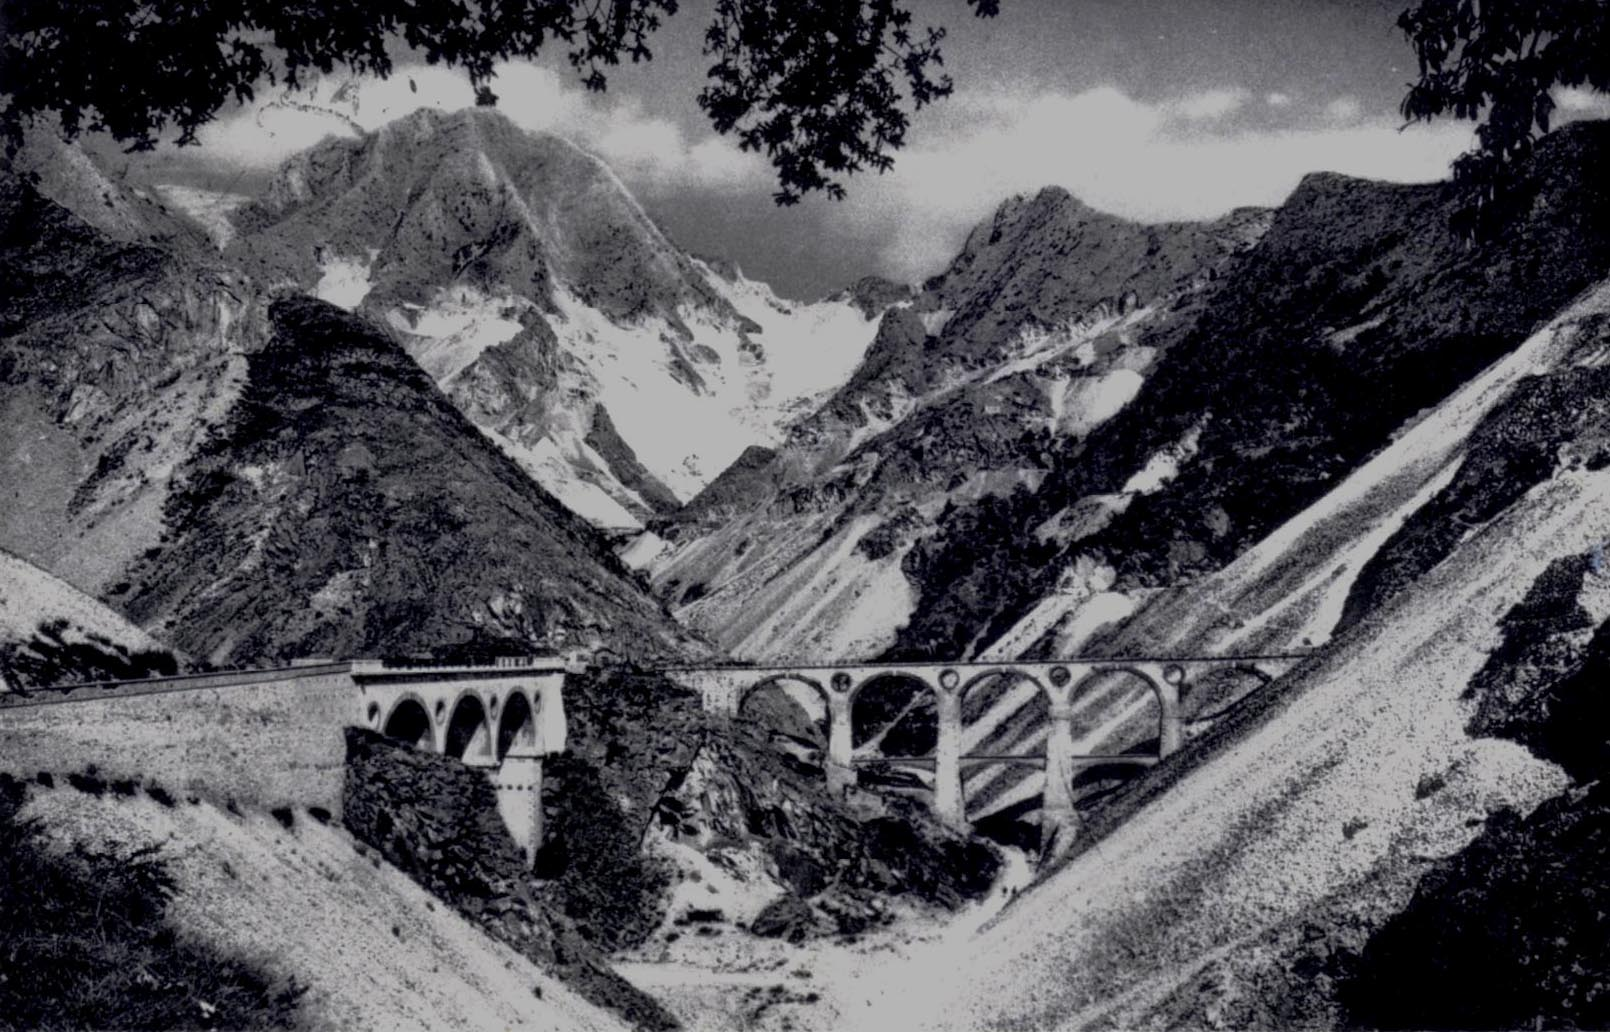 Marmifera Railway of Carrara - Vara bridges